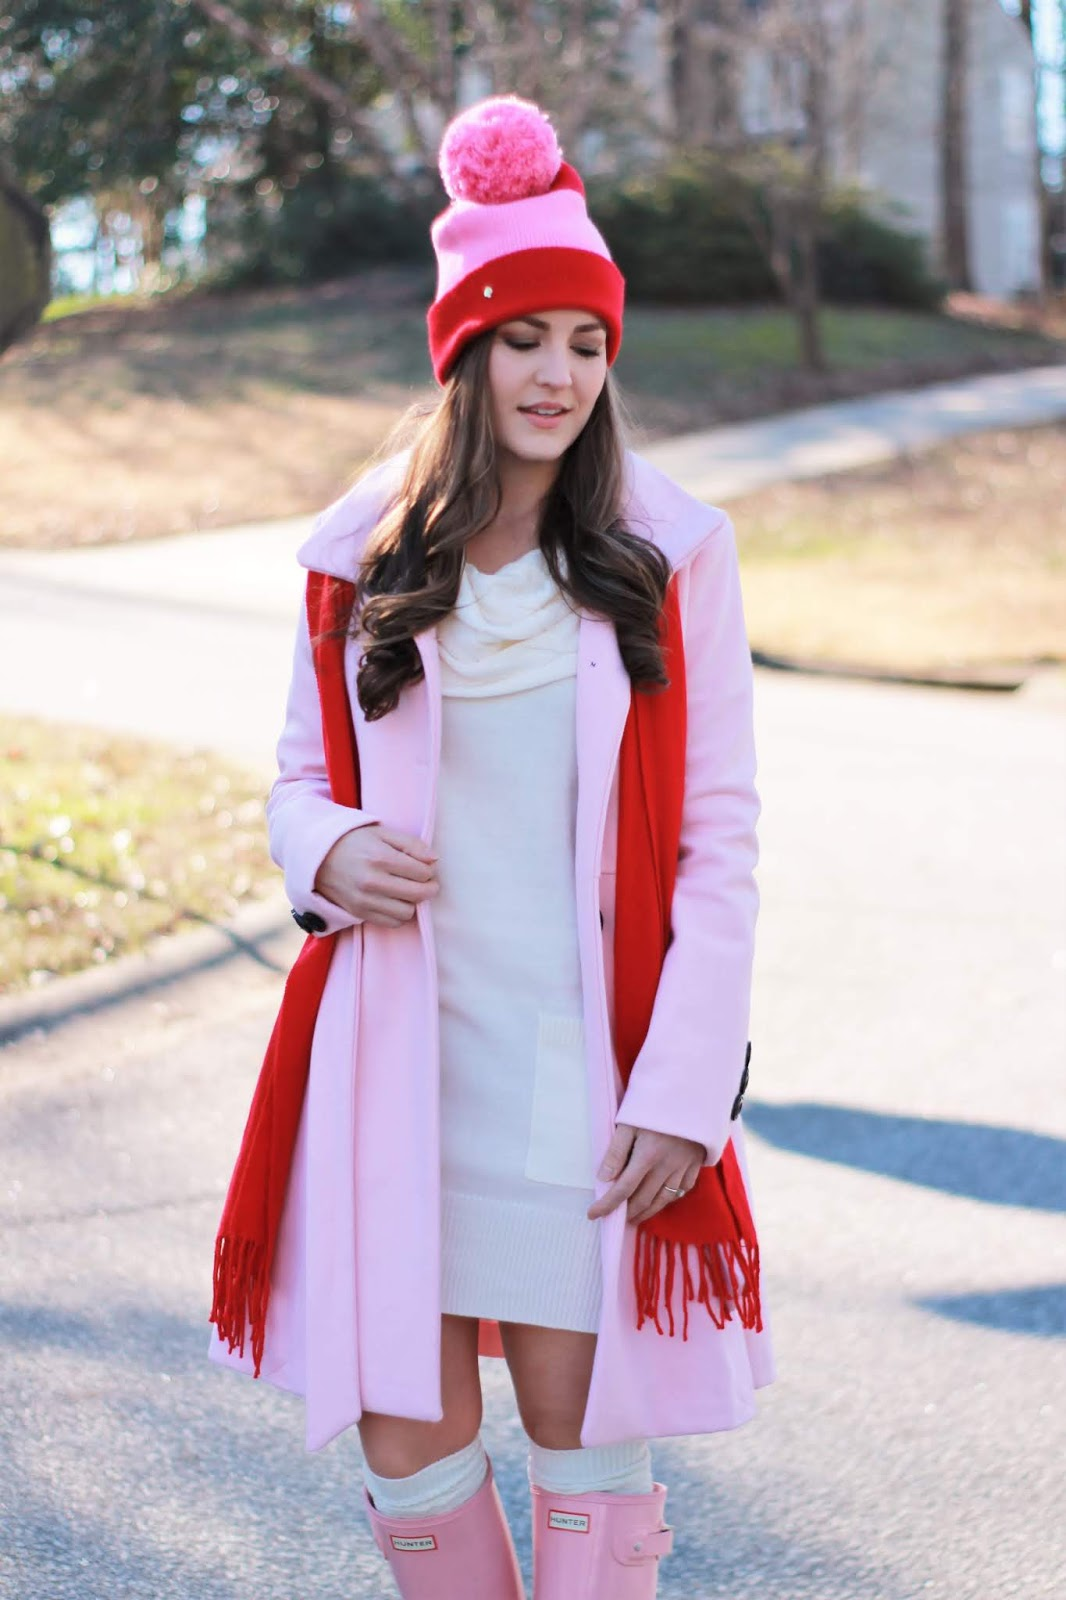 Pink and Red Outfit for Valentine's Day, Valentine's outfit, pink and red outfit, pink and red, pink coat and red scarf, hunter boots, womens fashion, cute Valentine's outfit